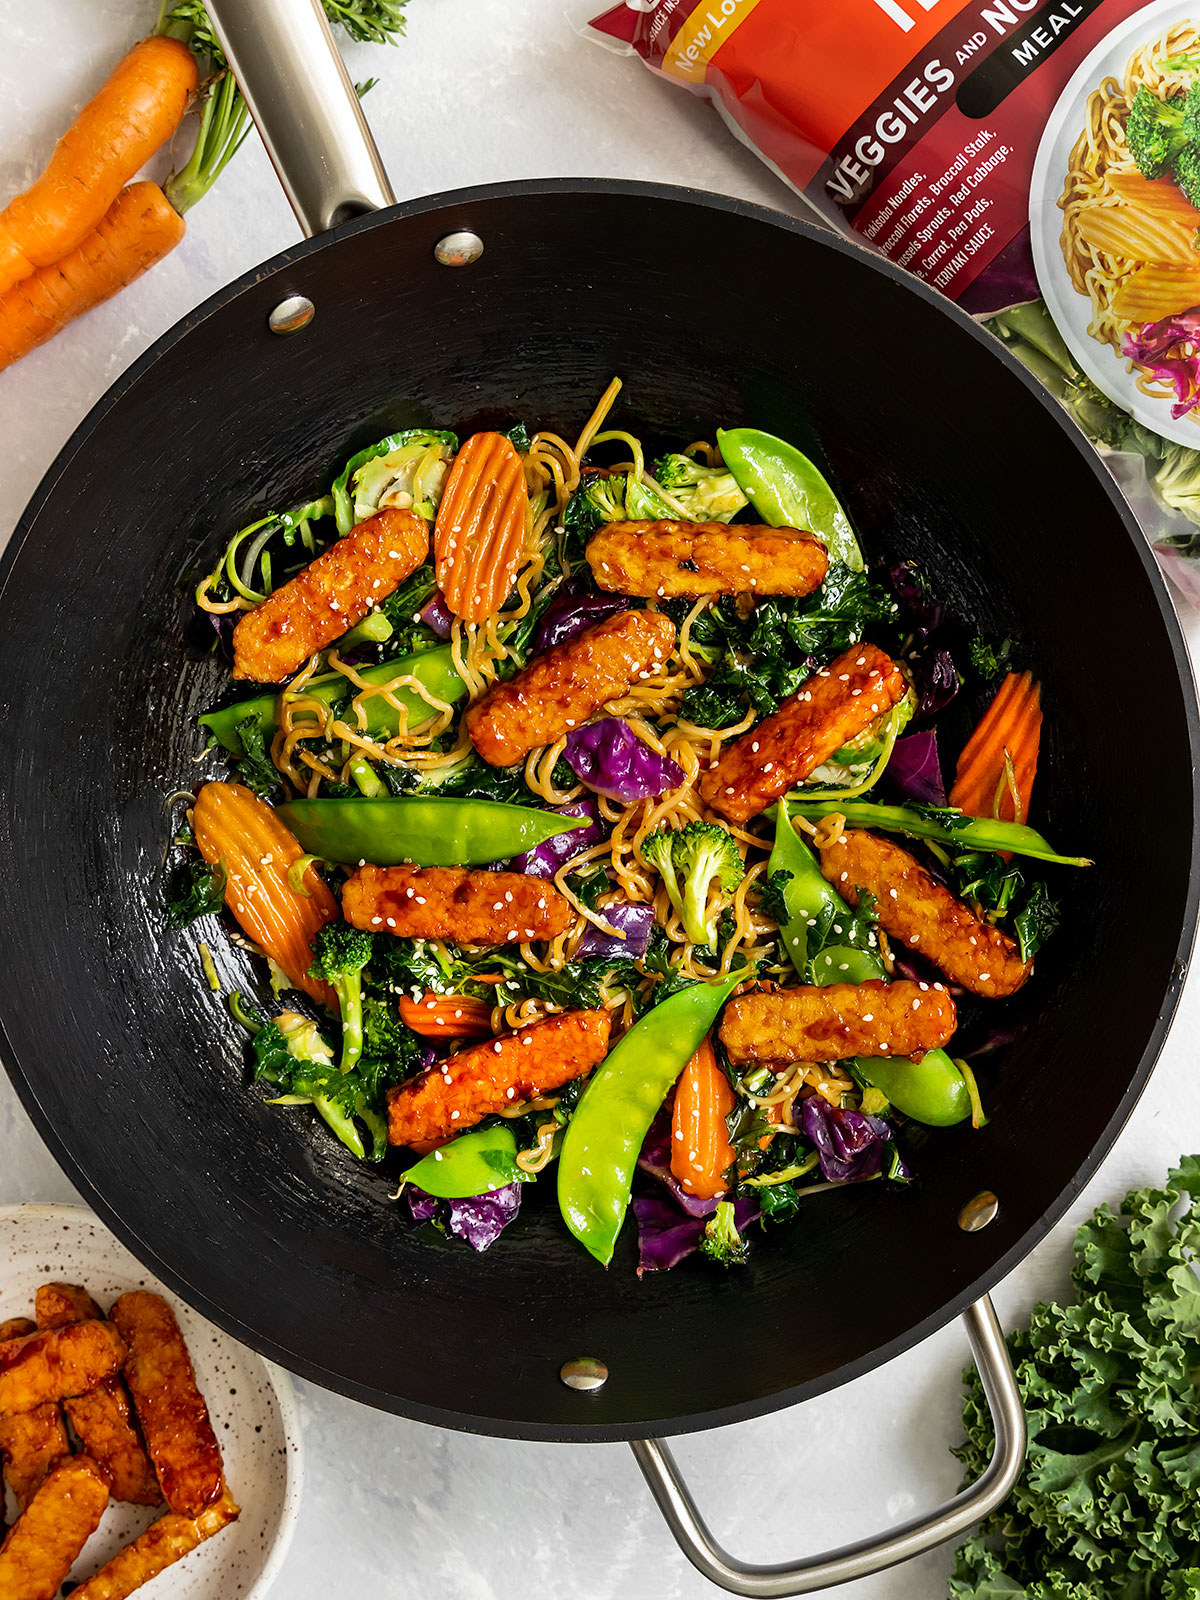 a wok full of asian vegetables, noodles, and tempeh stir fry